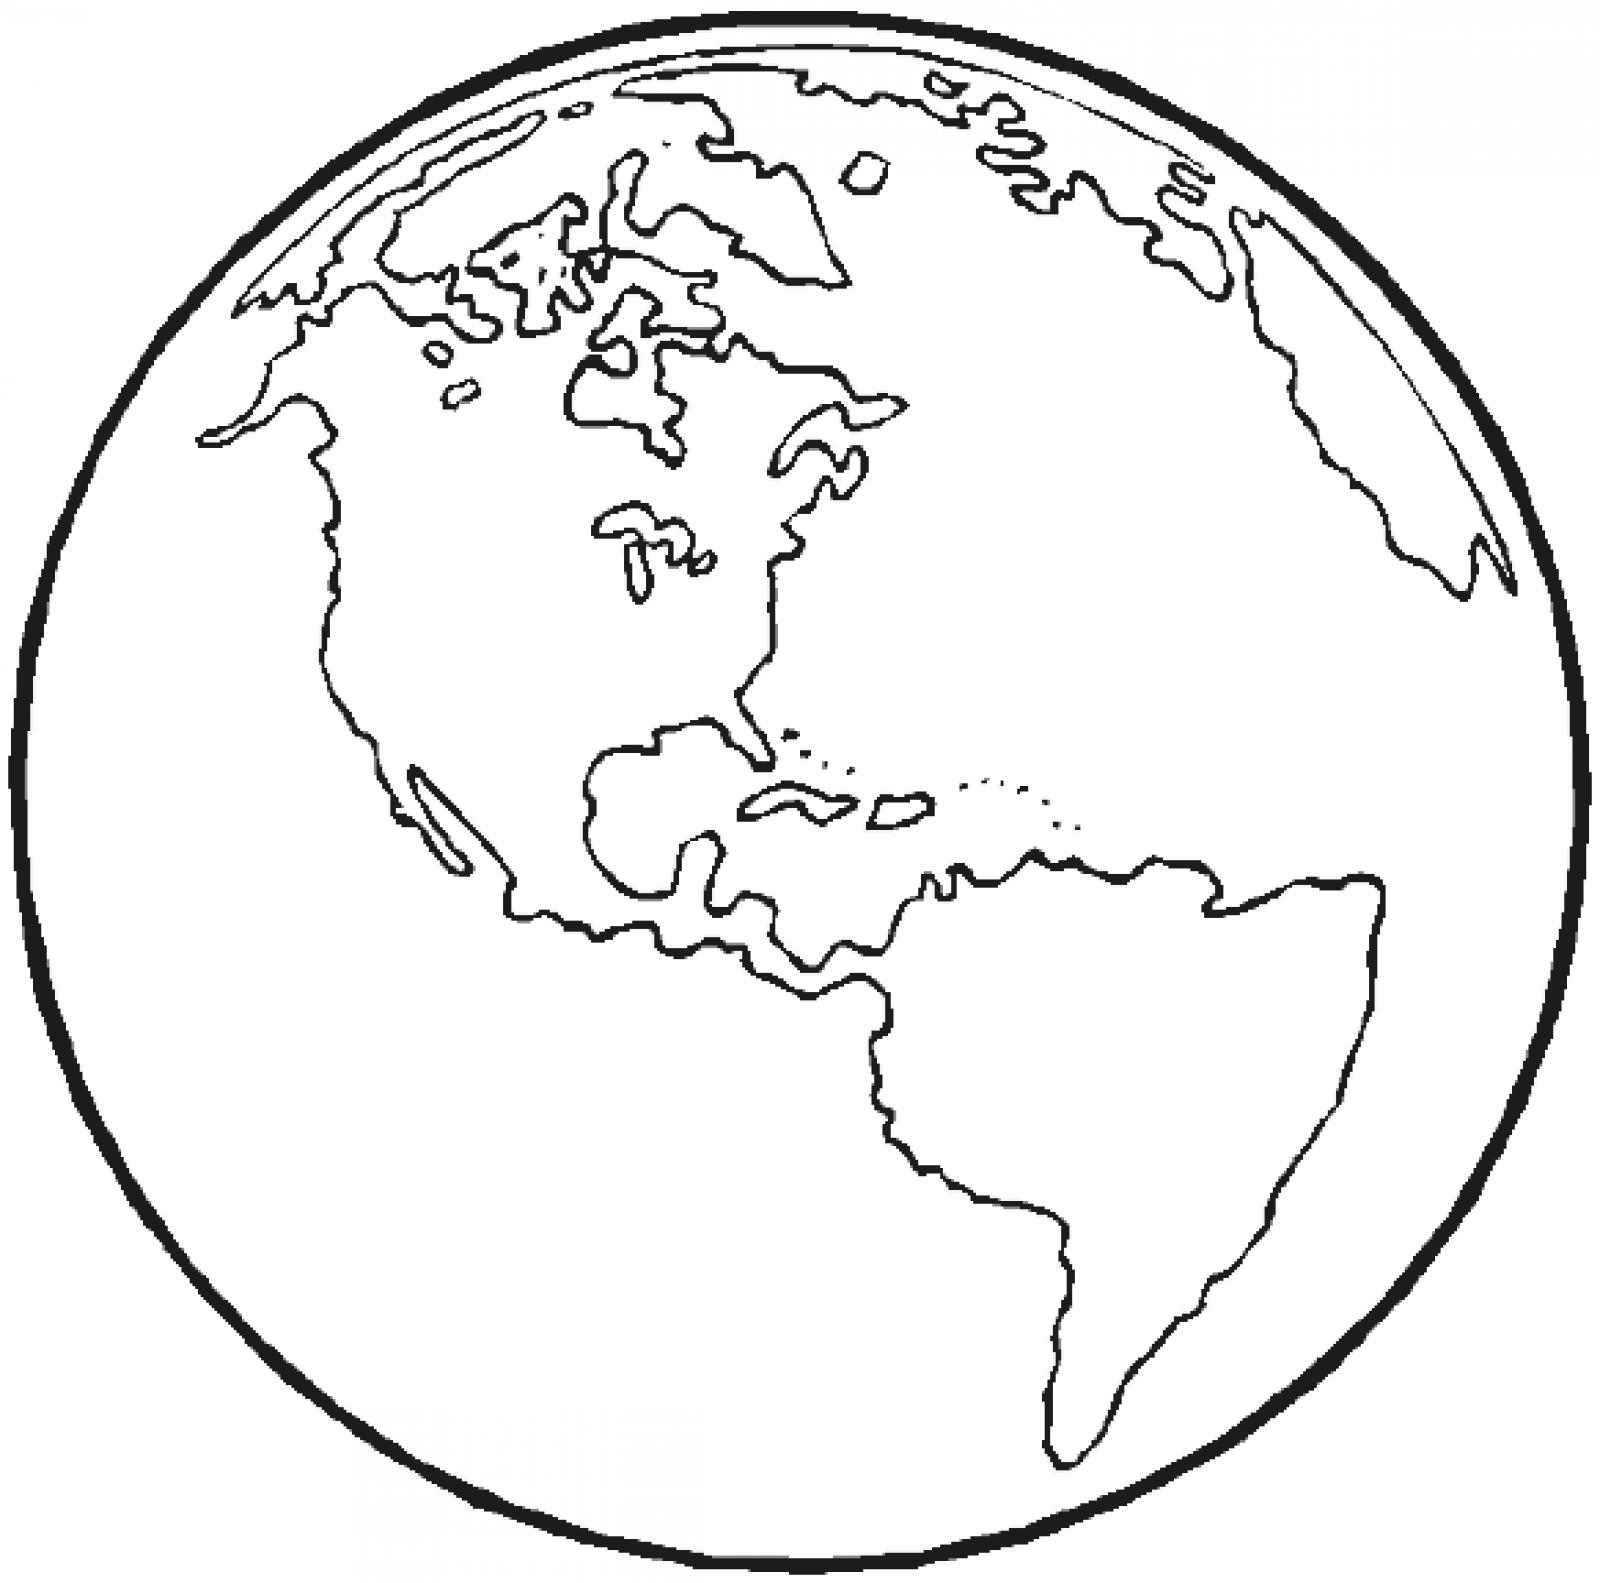 world coloring pages world map coloring page for kids coloring home world coloring pages